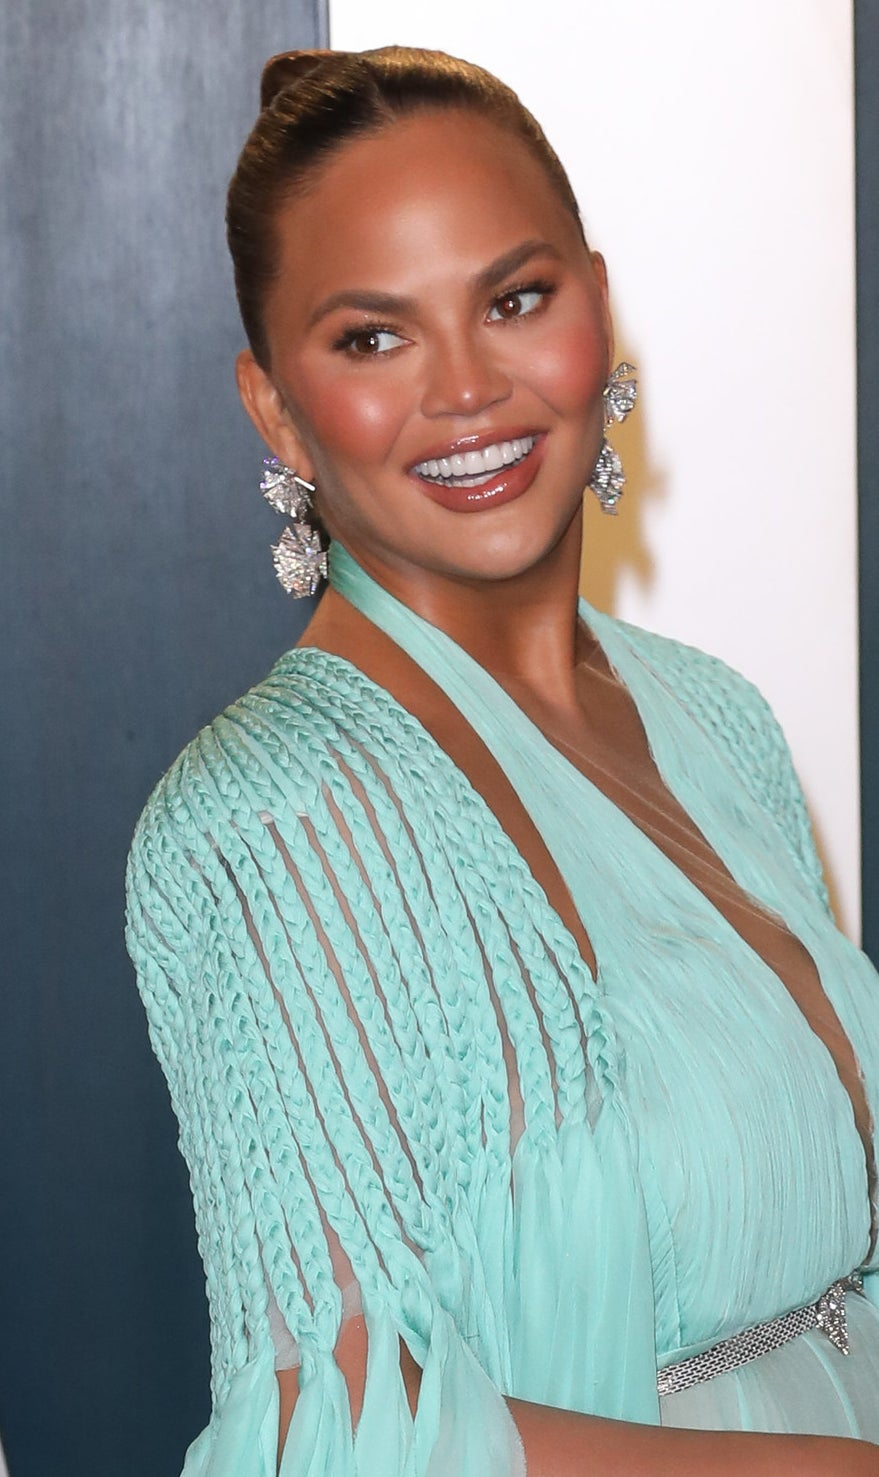 Chrissy Teigen smiling in a blue-maxi dress and large diamond earrings